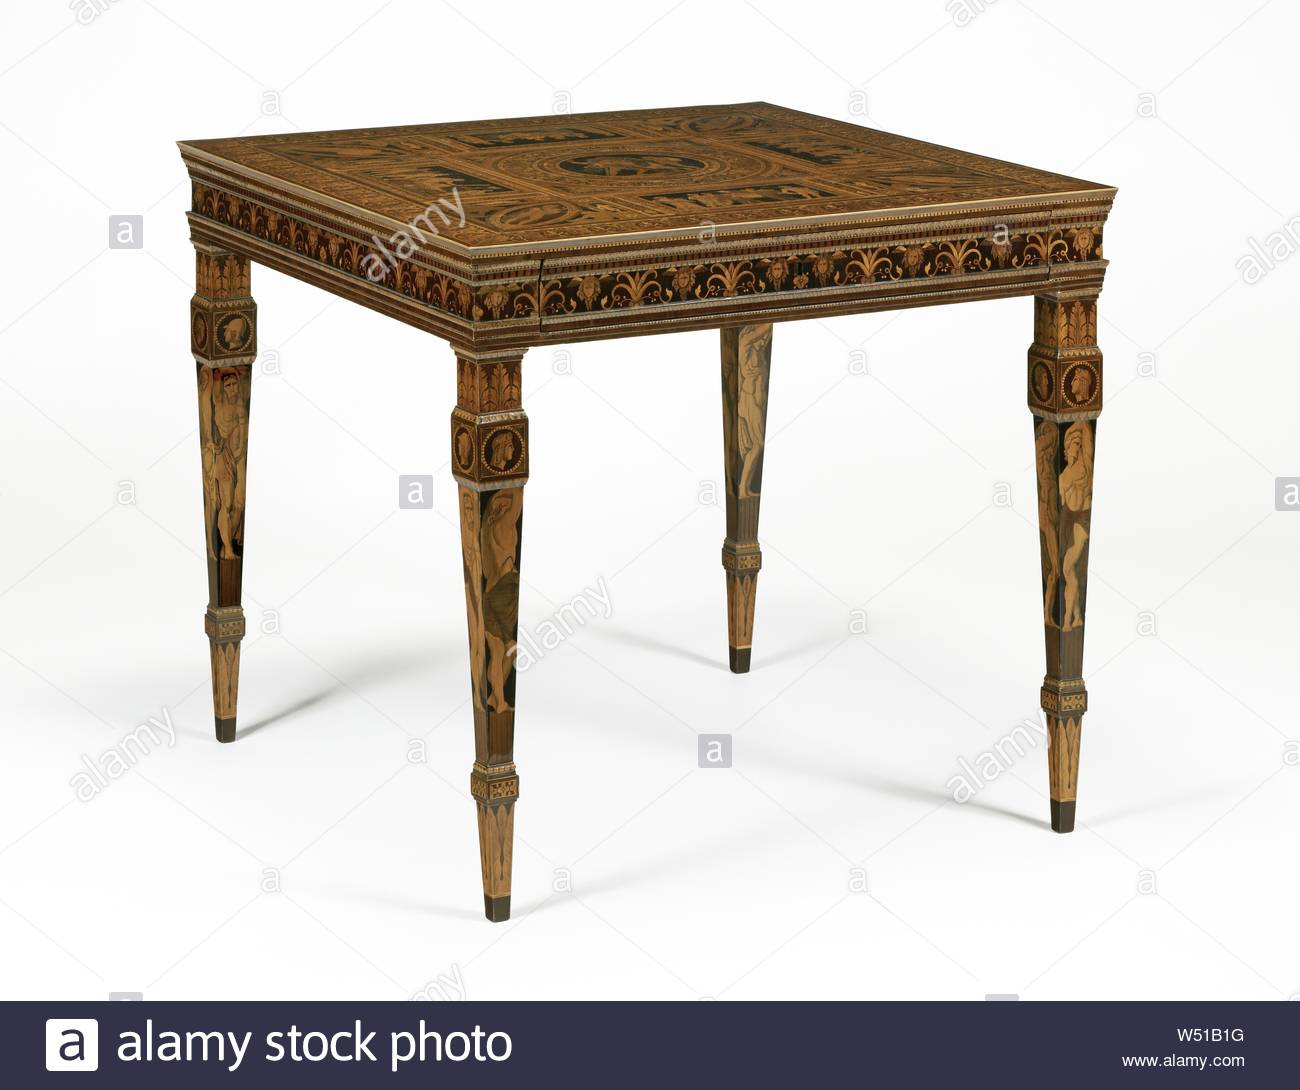 table francesco abbiati italian active about 1780 about 1800 mandello lake o lombardia italy 1790s oak walnut and poplar veneered with purplewood satinwood ebony and various fruitwoods 778 x 845 x 875 cm 30 58 x 33 14 x 34 716 in W51B1G